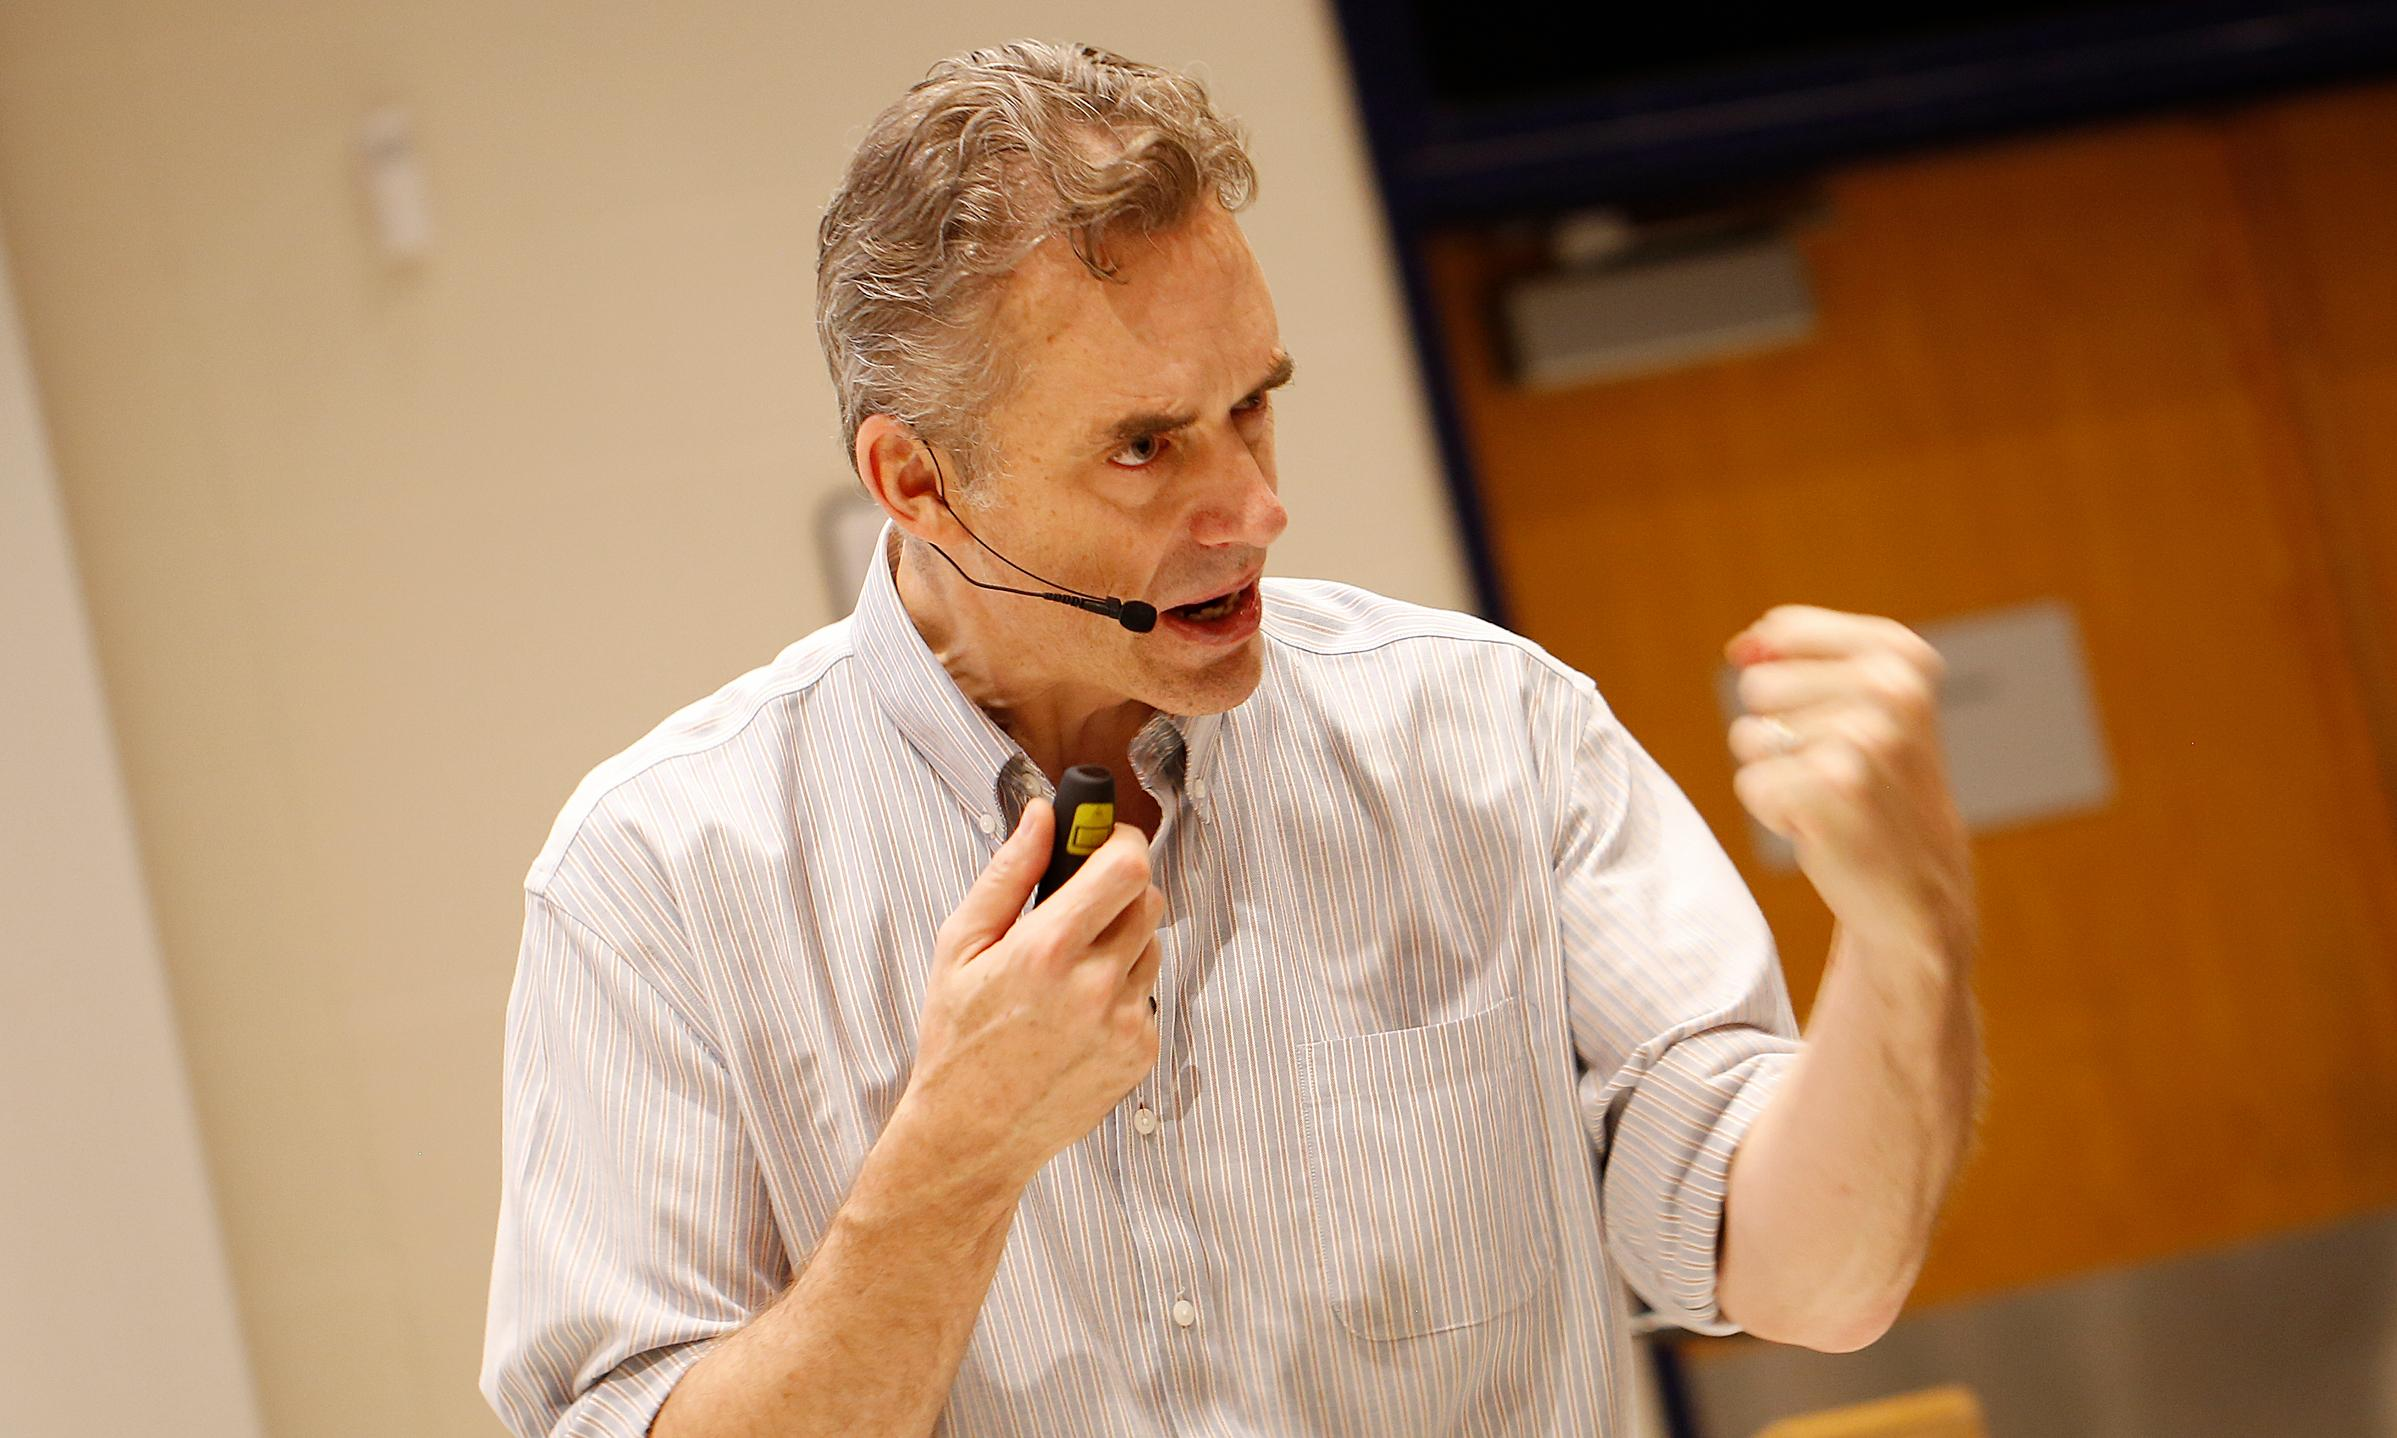 How dangerous is Jordan B Peterson, the rightwing professor who 'hit a hornets' nest'?